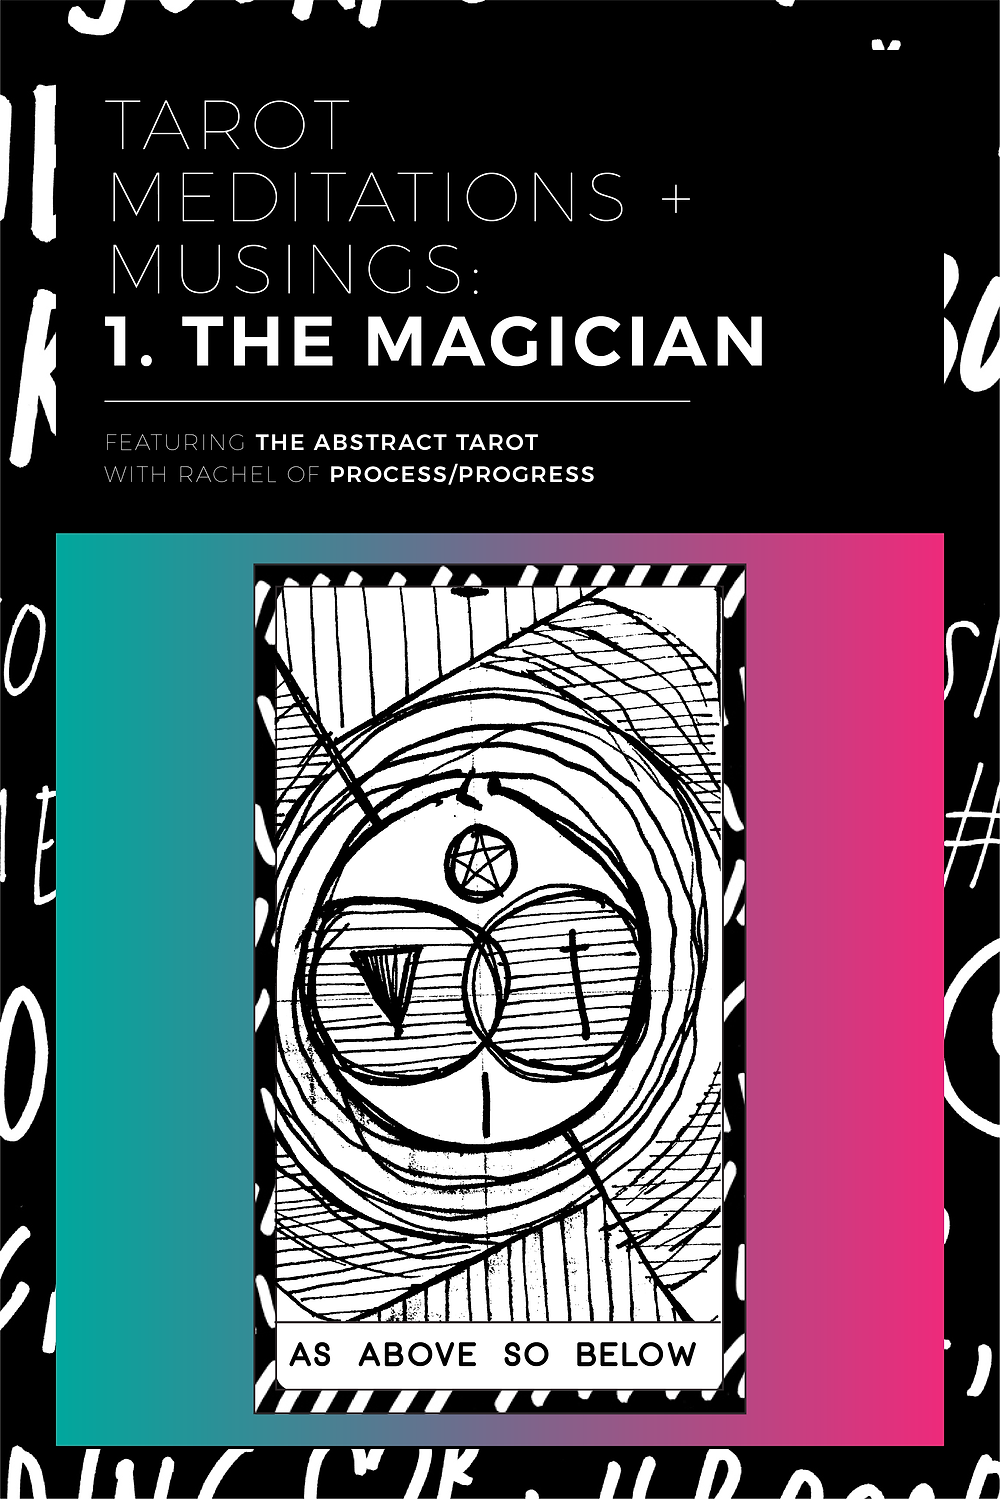 Tarot meditations and musings: The Magician.